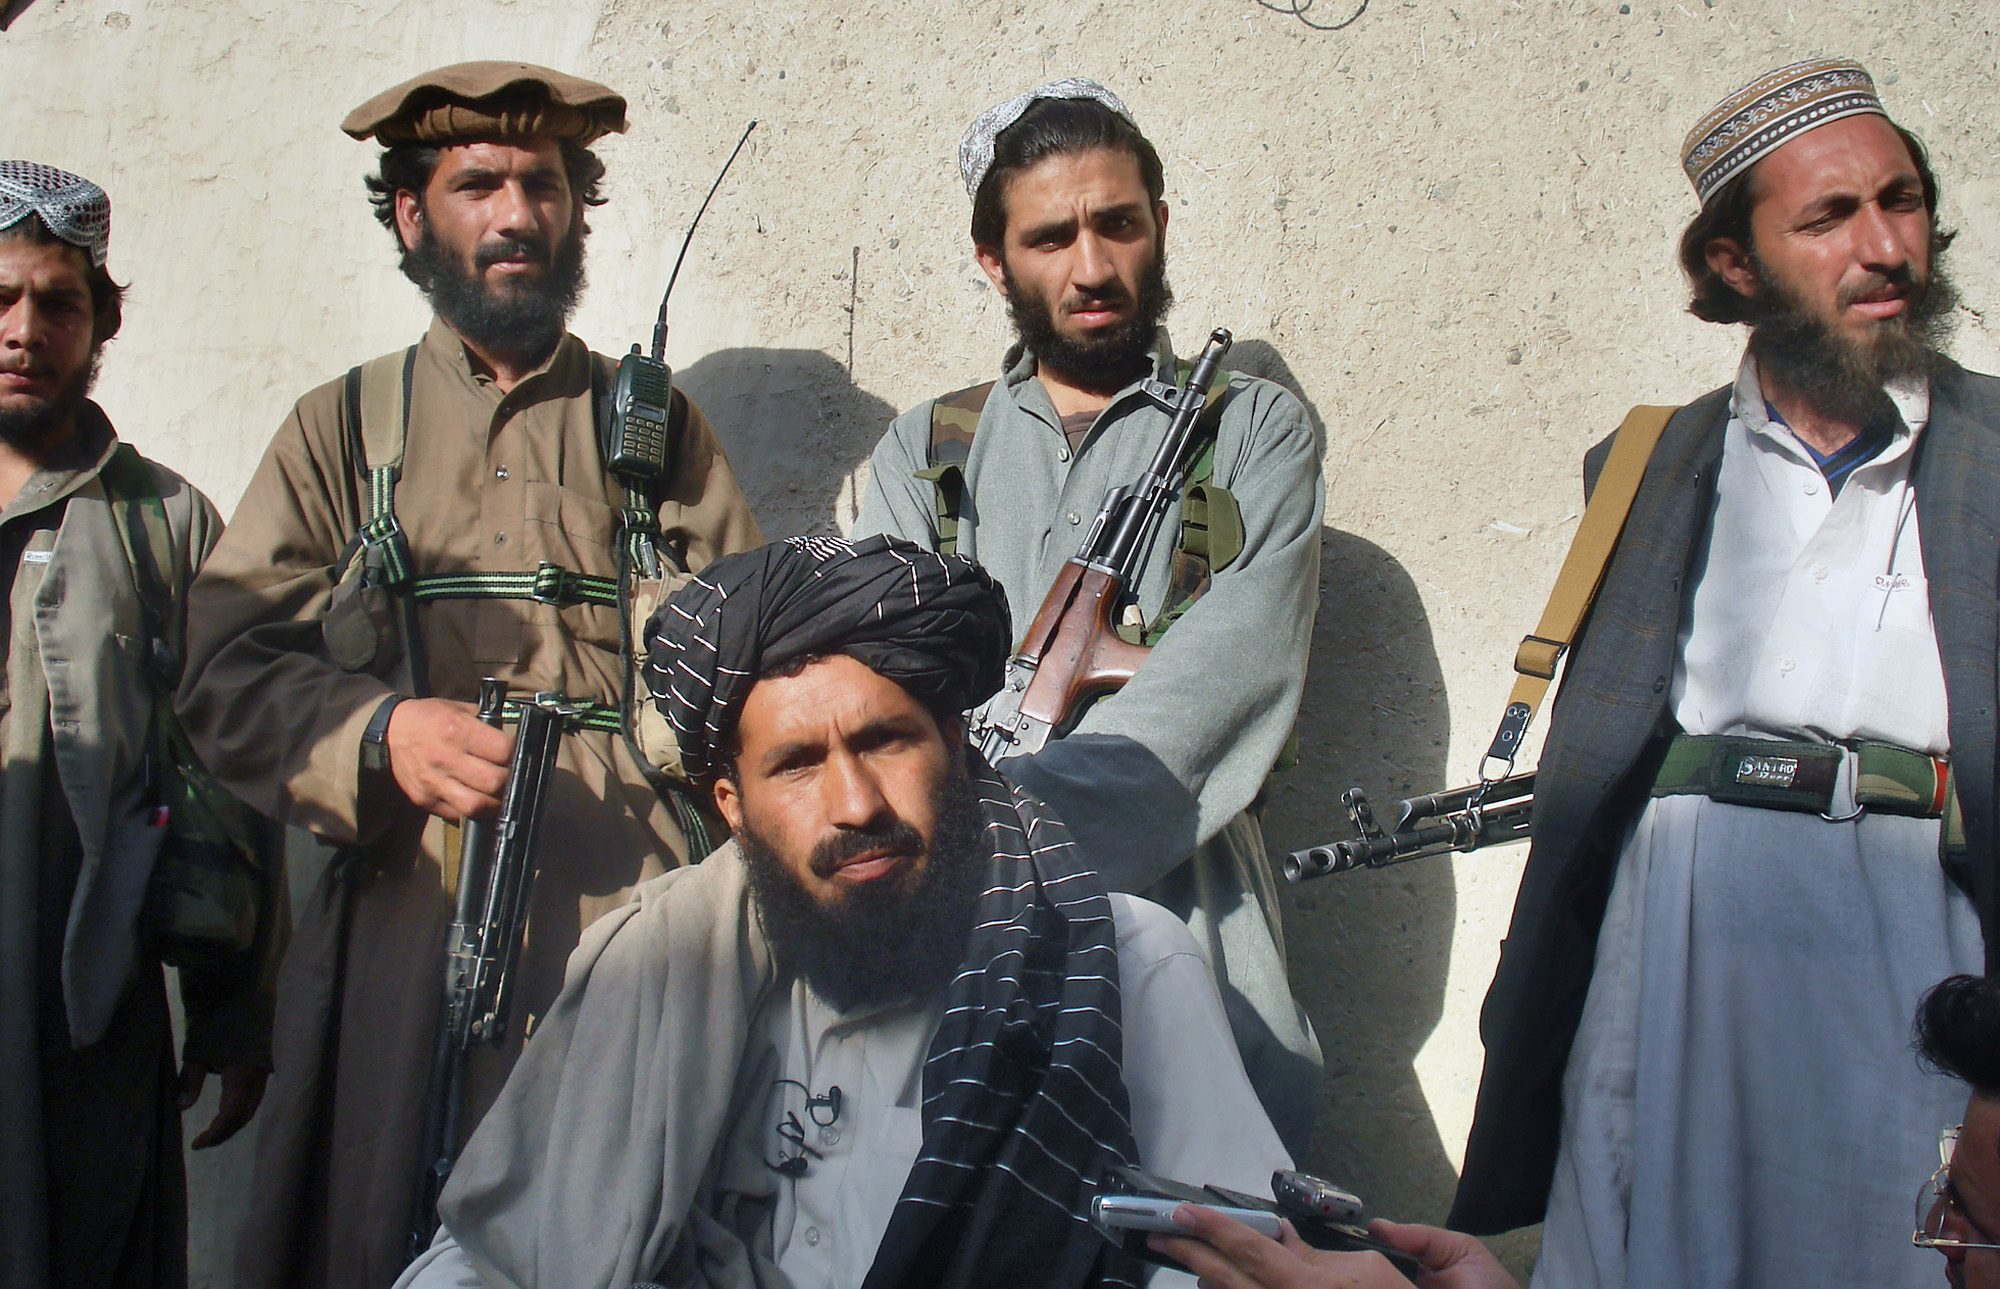 Taliban app removed from Google Play store